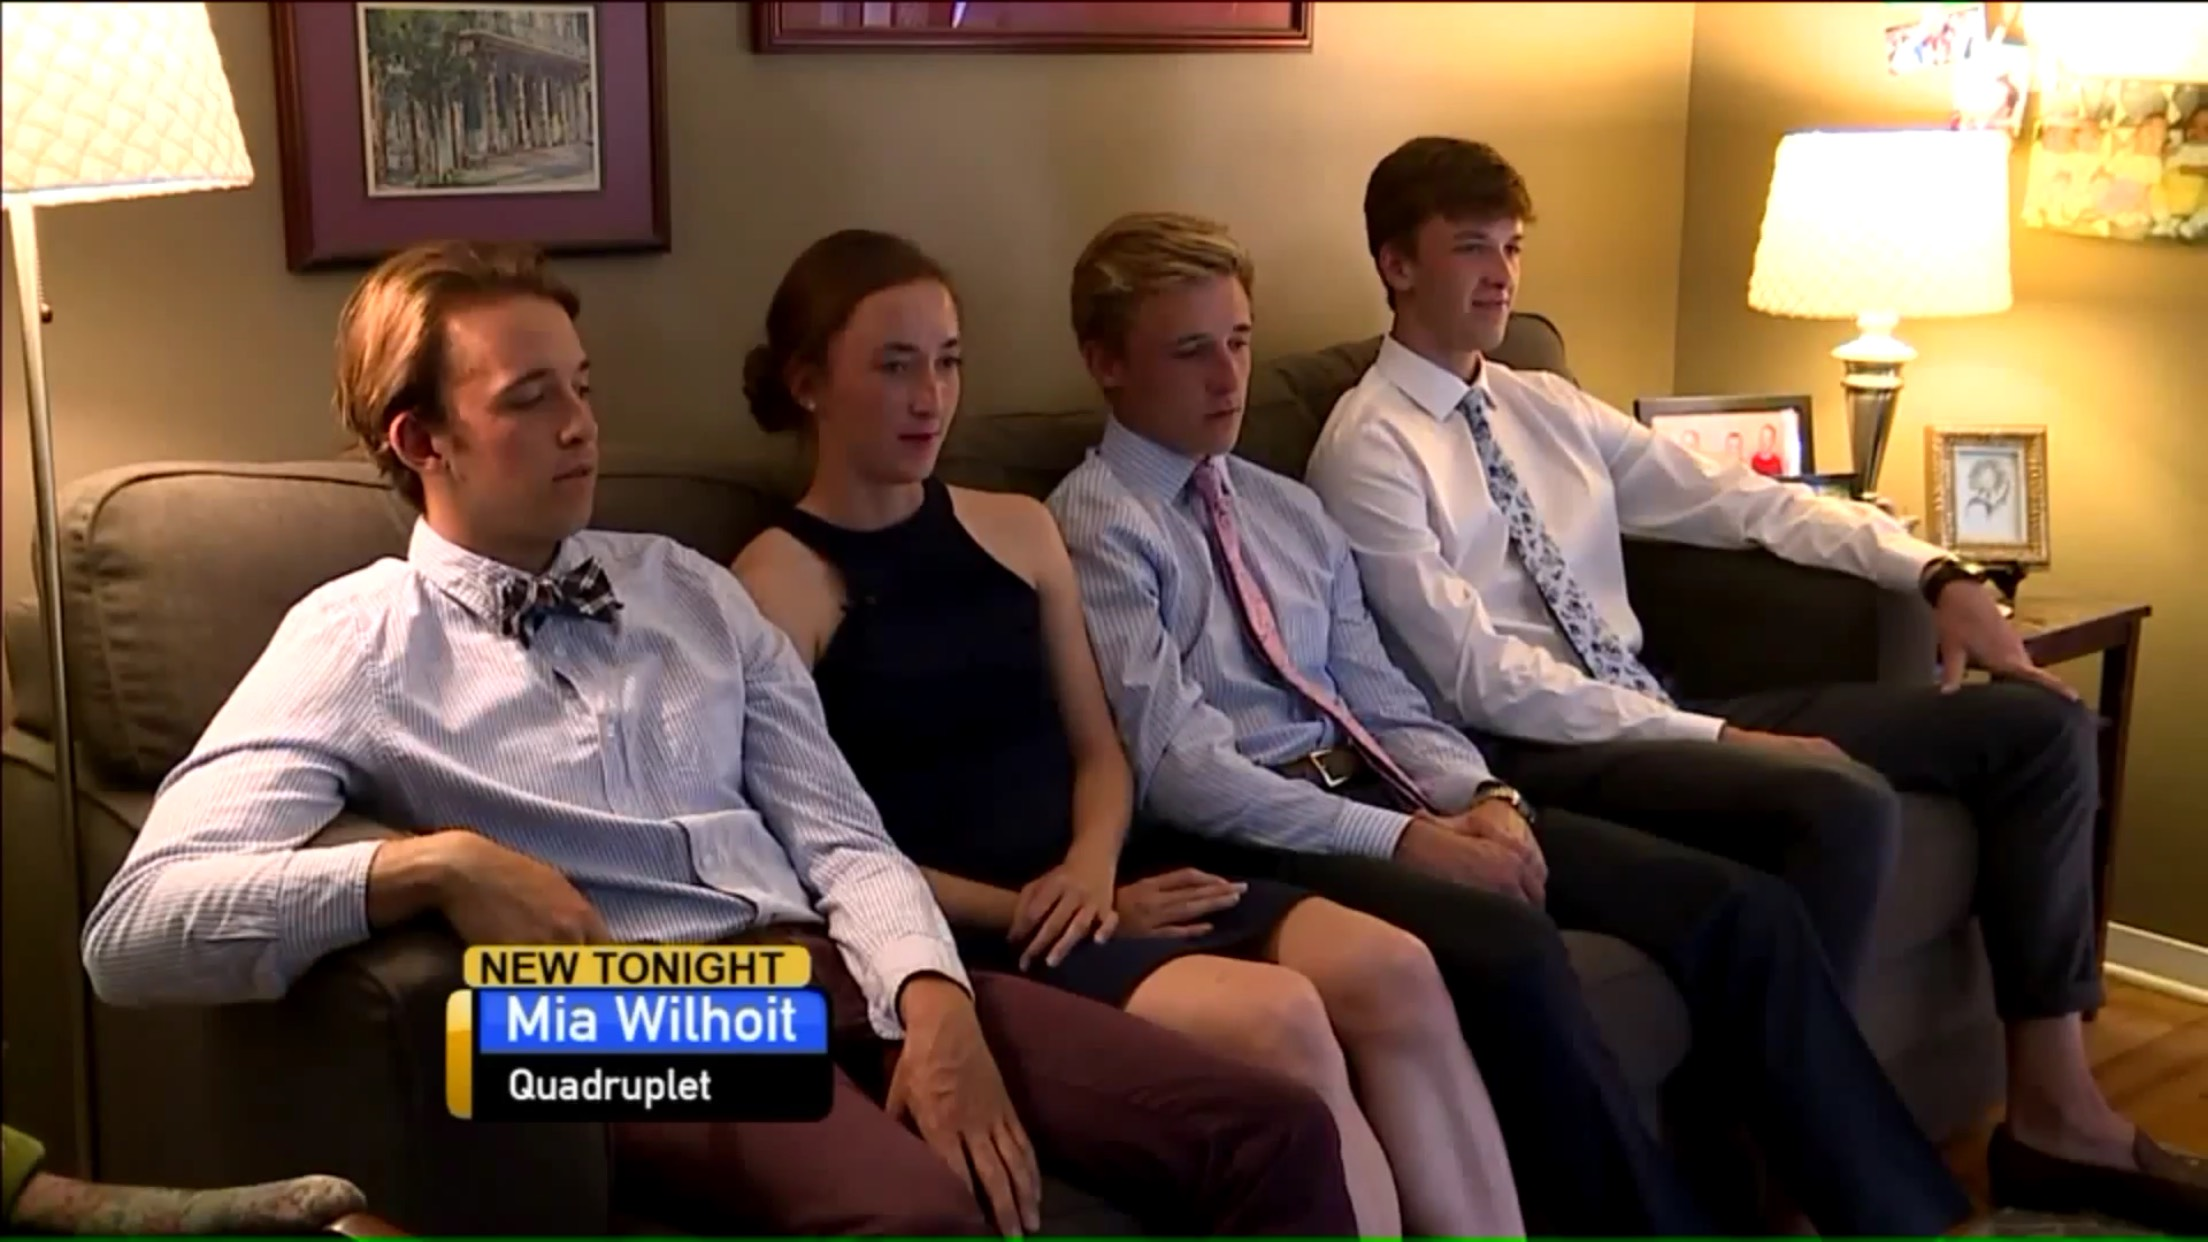 Mia Wilhoit: Quadruplet (sitting with her three brothers)